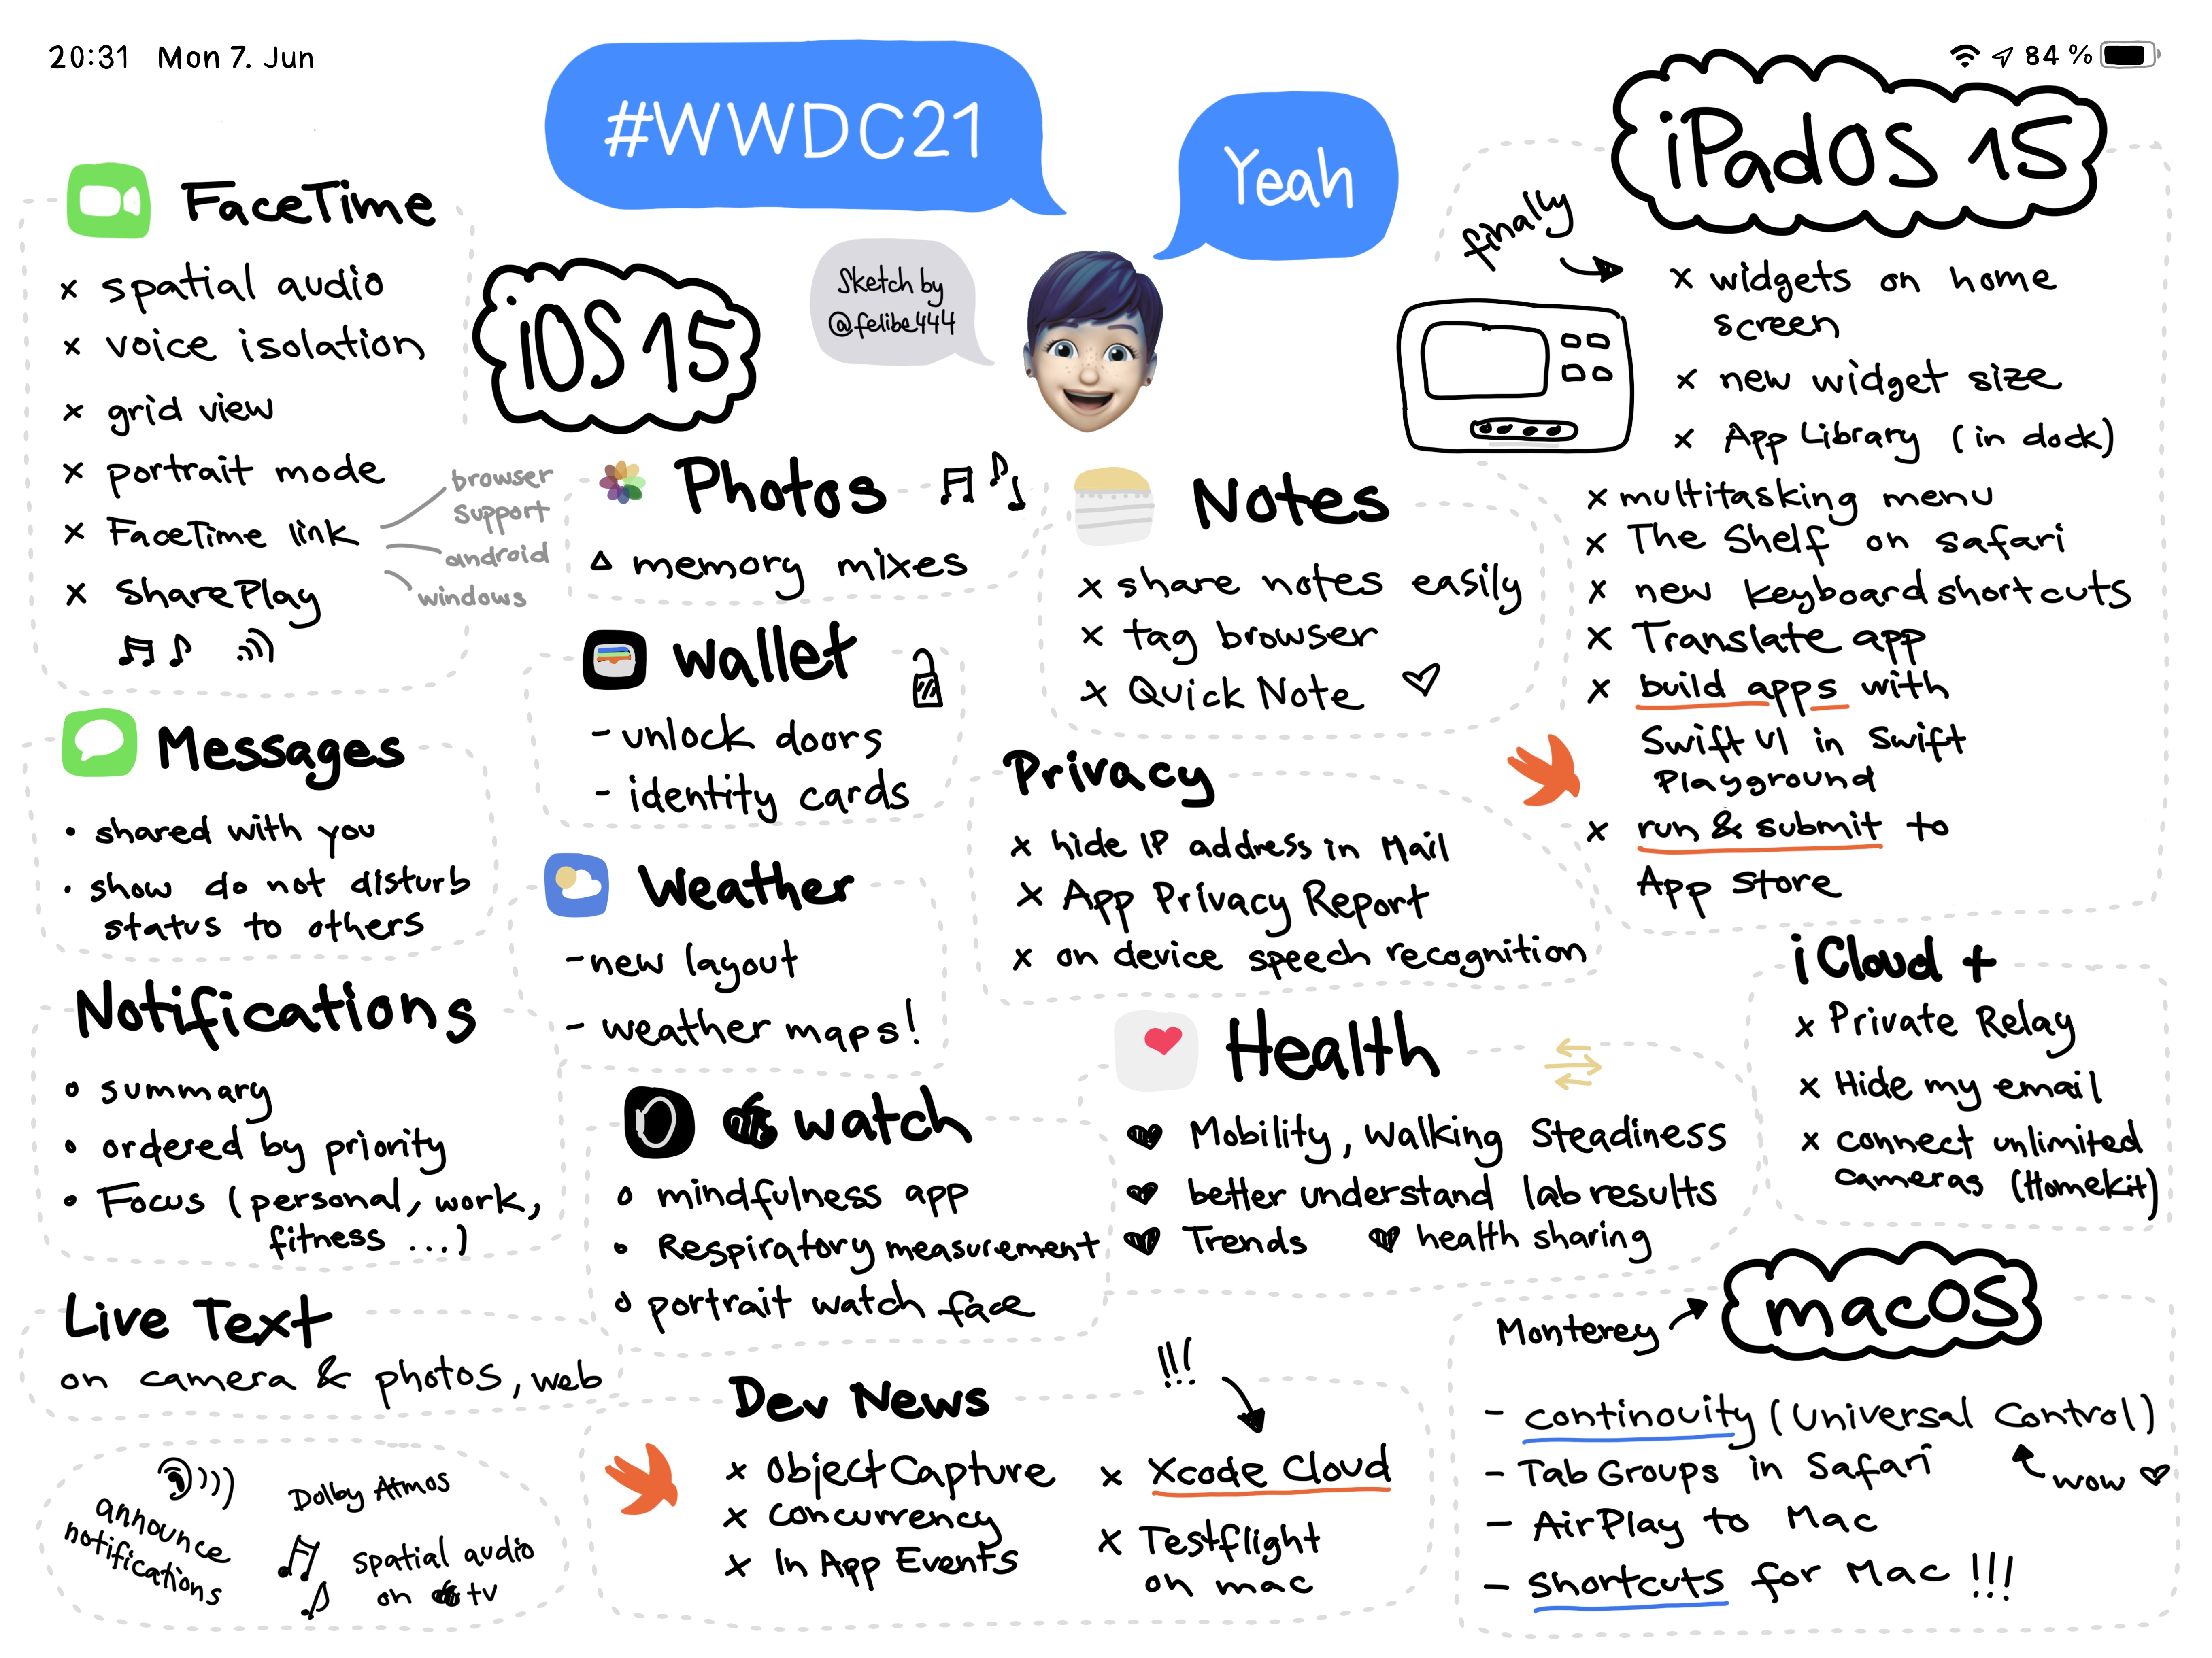 Sketchnote of WWDC Keynote 2021 with announcements about iOS 15, iPadOS 15, macOS Monterey and more